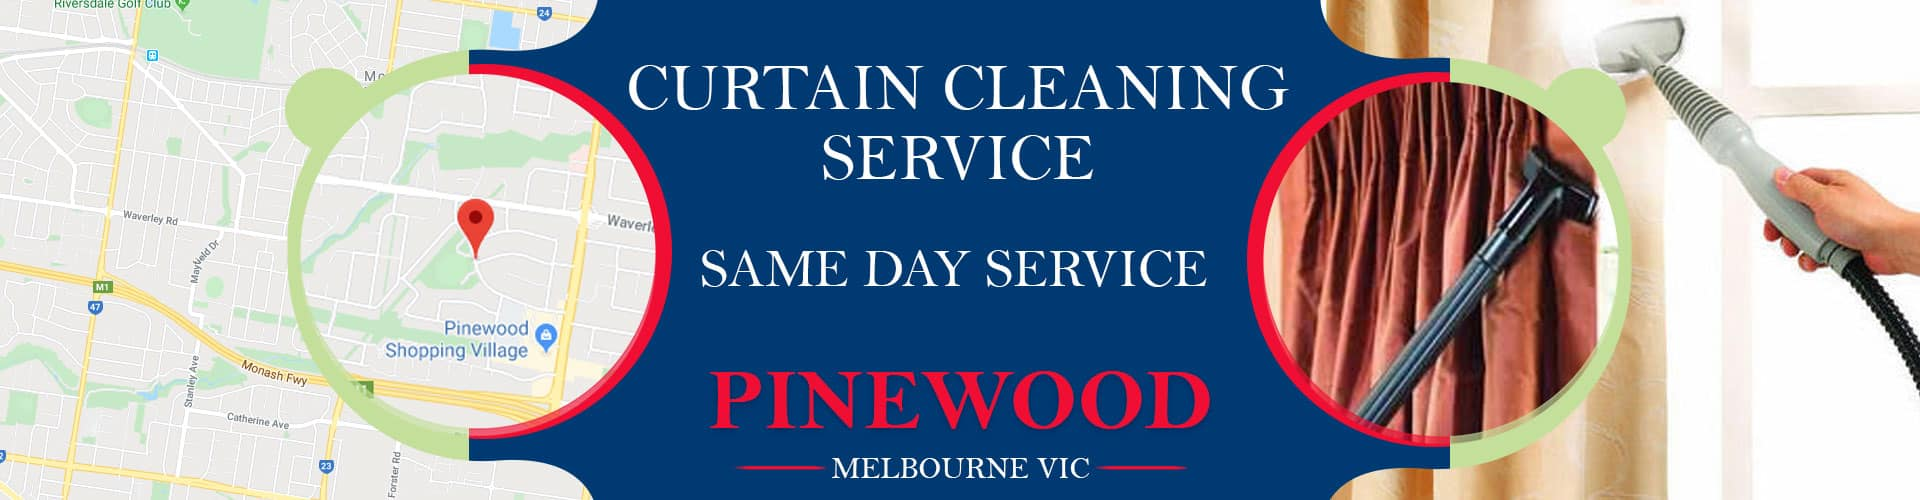 Curtain Cleaning Pinewood